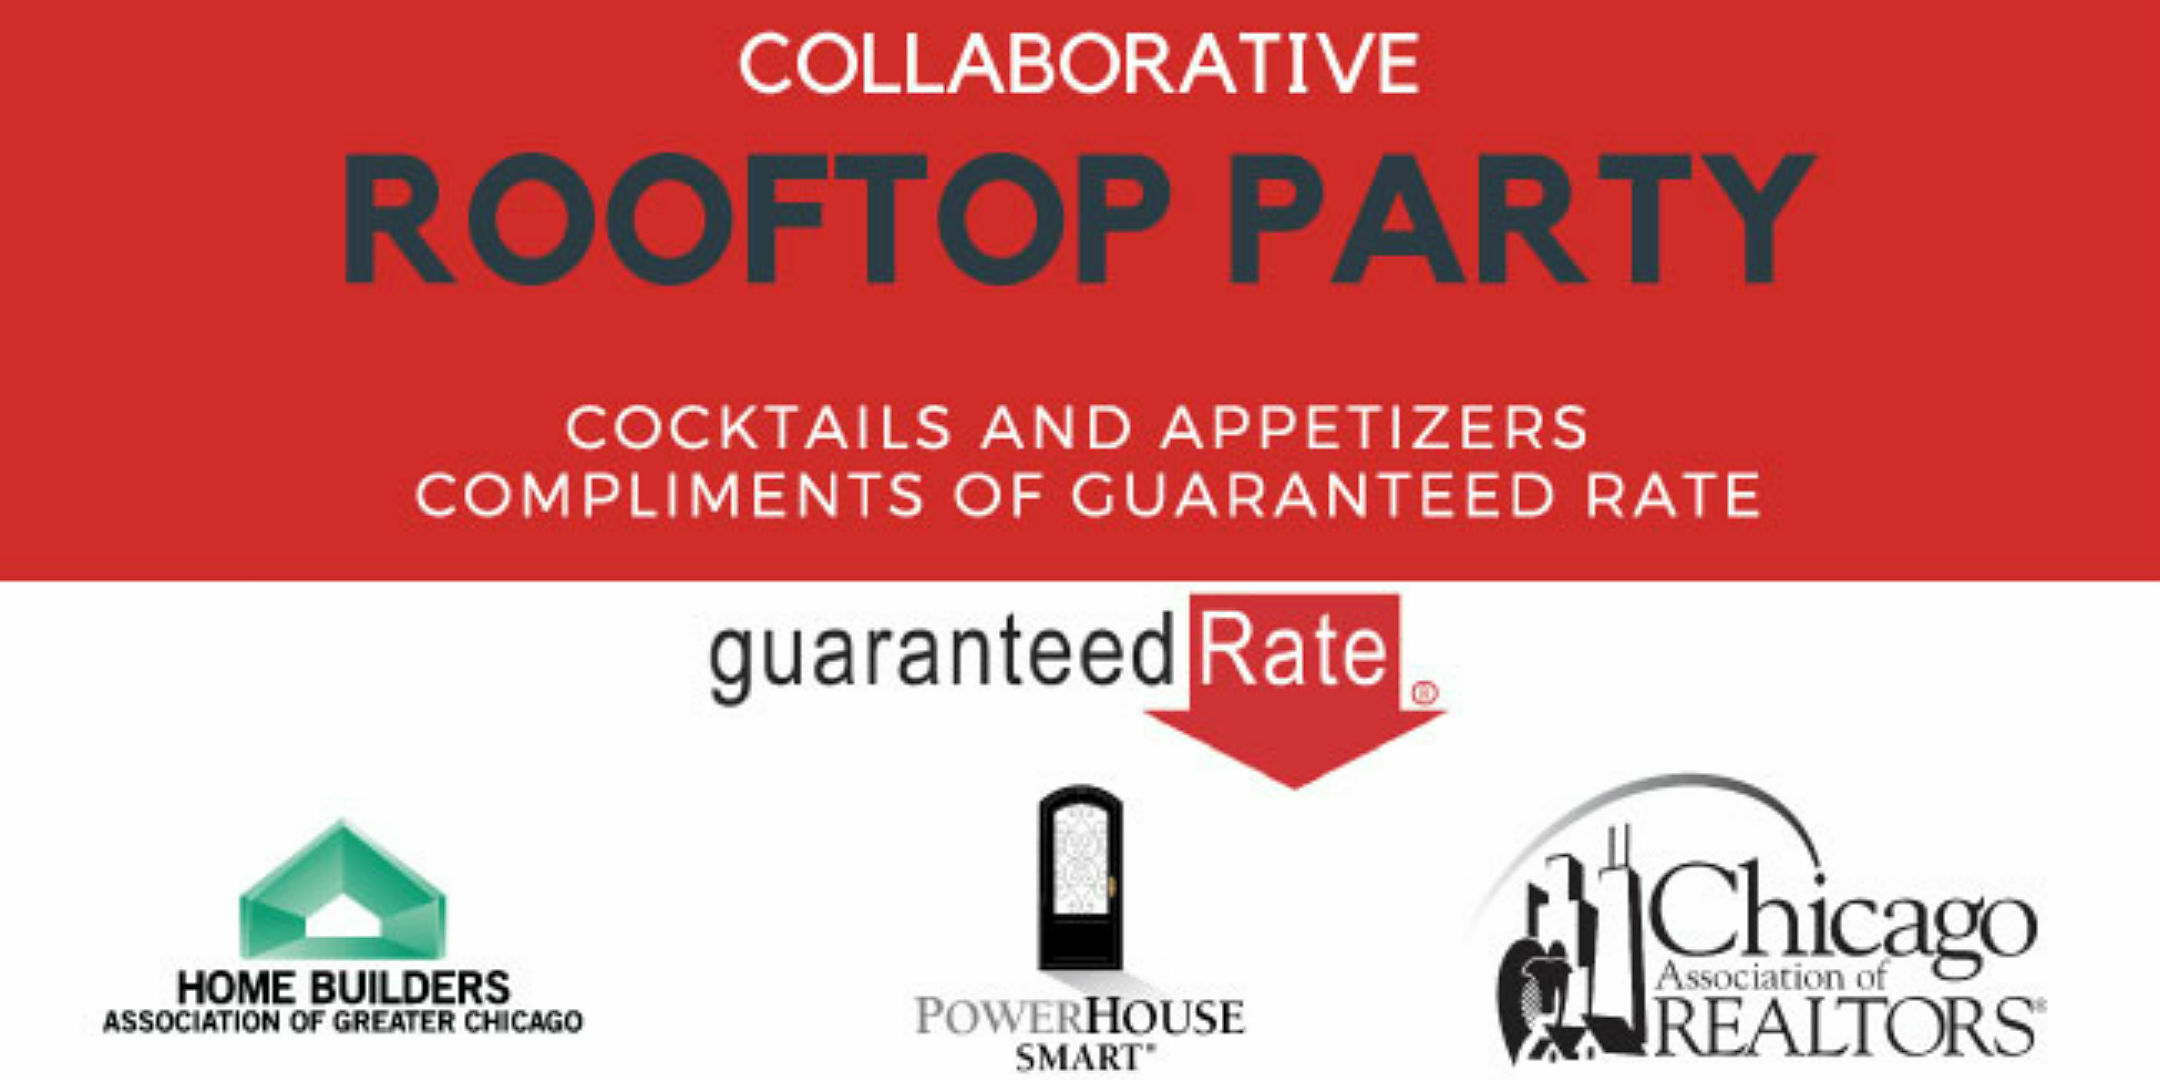 Collaborative Rooftop Cocktail Networking